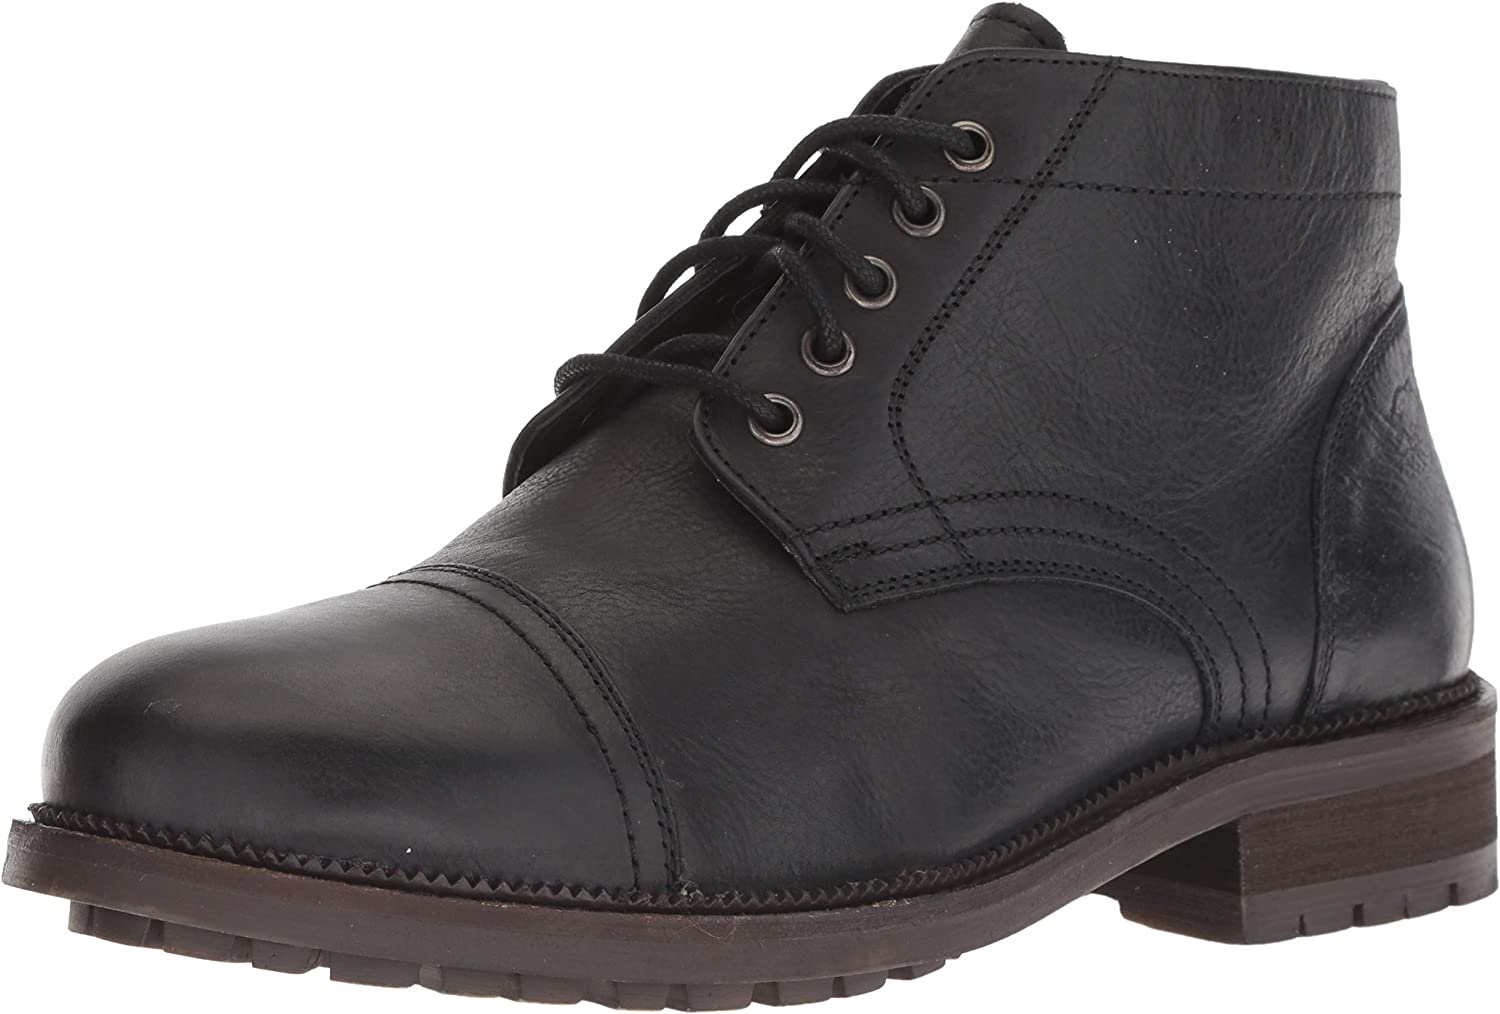 Scholls Shoes Mens Airborne Boot Oxford Dr